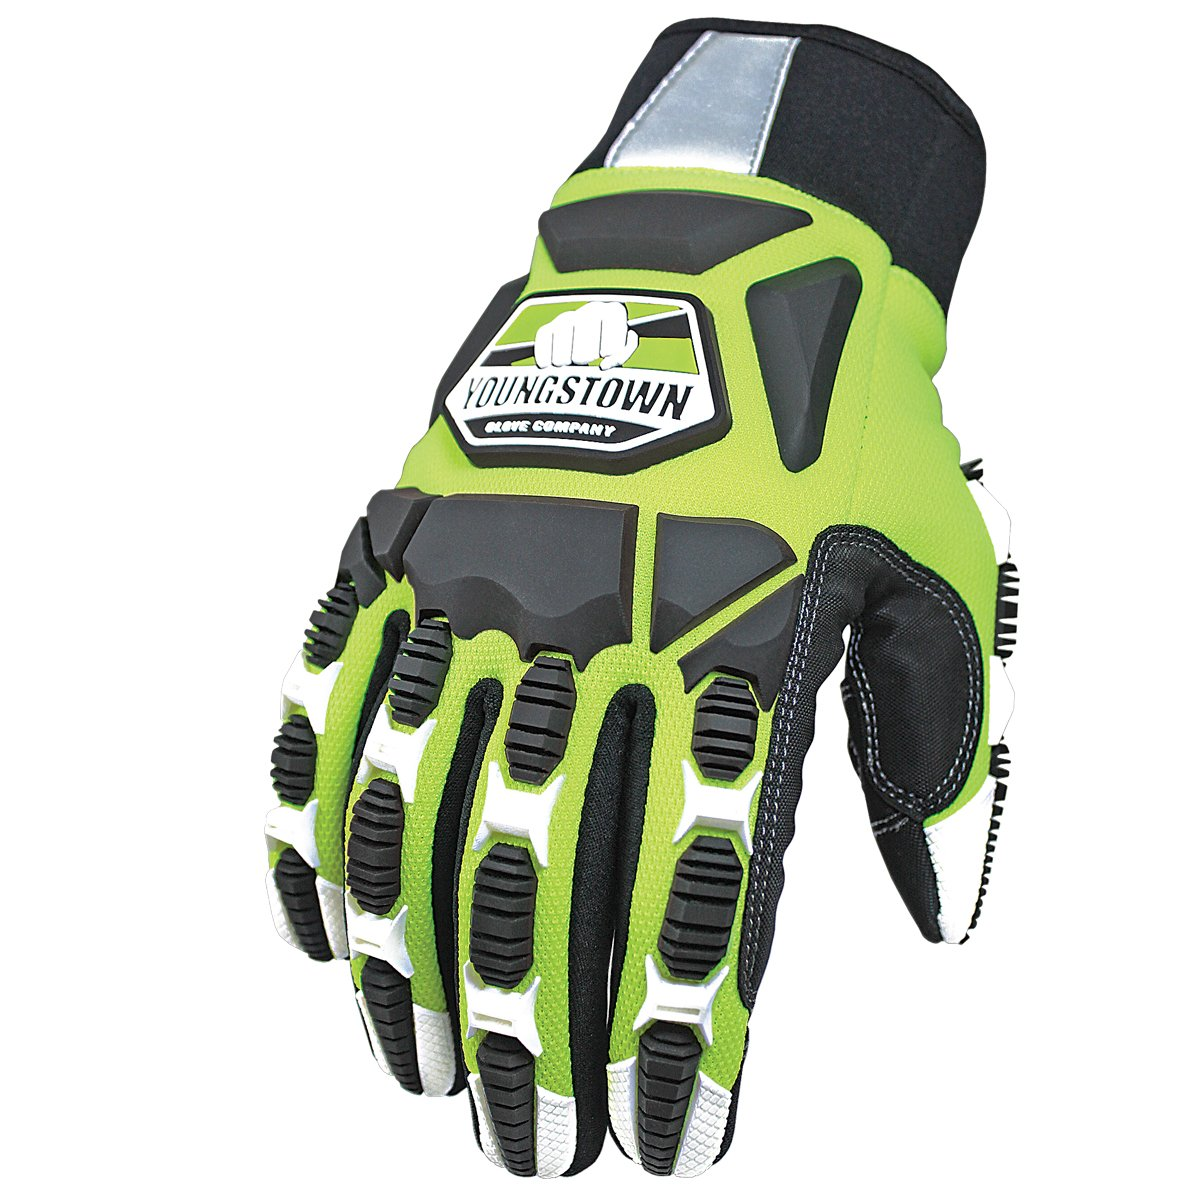 Youngstown Glove 09-9083-10-L Titan XT Lined with Kevlar Glove, Large - Work Gloves - Amazon.com